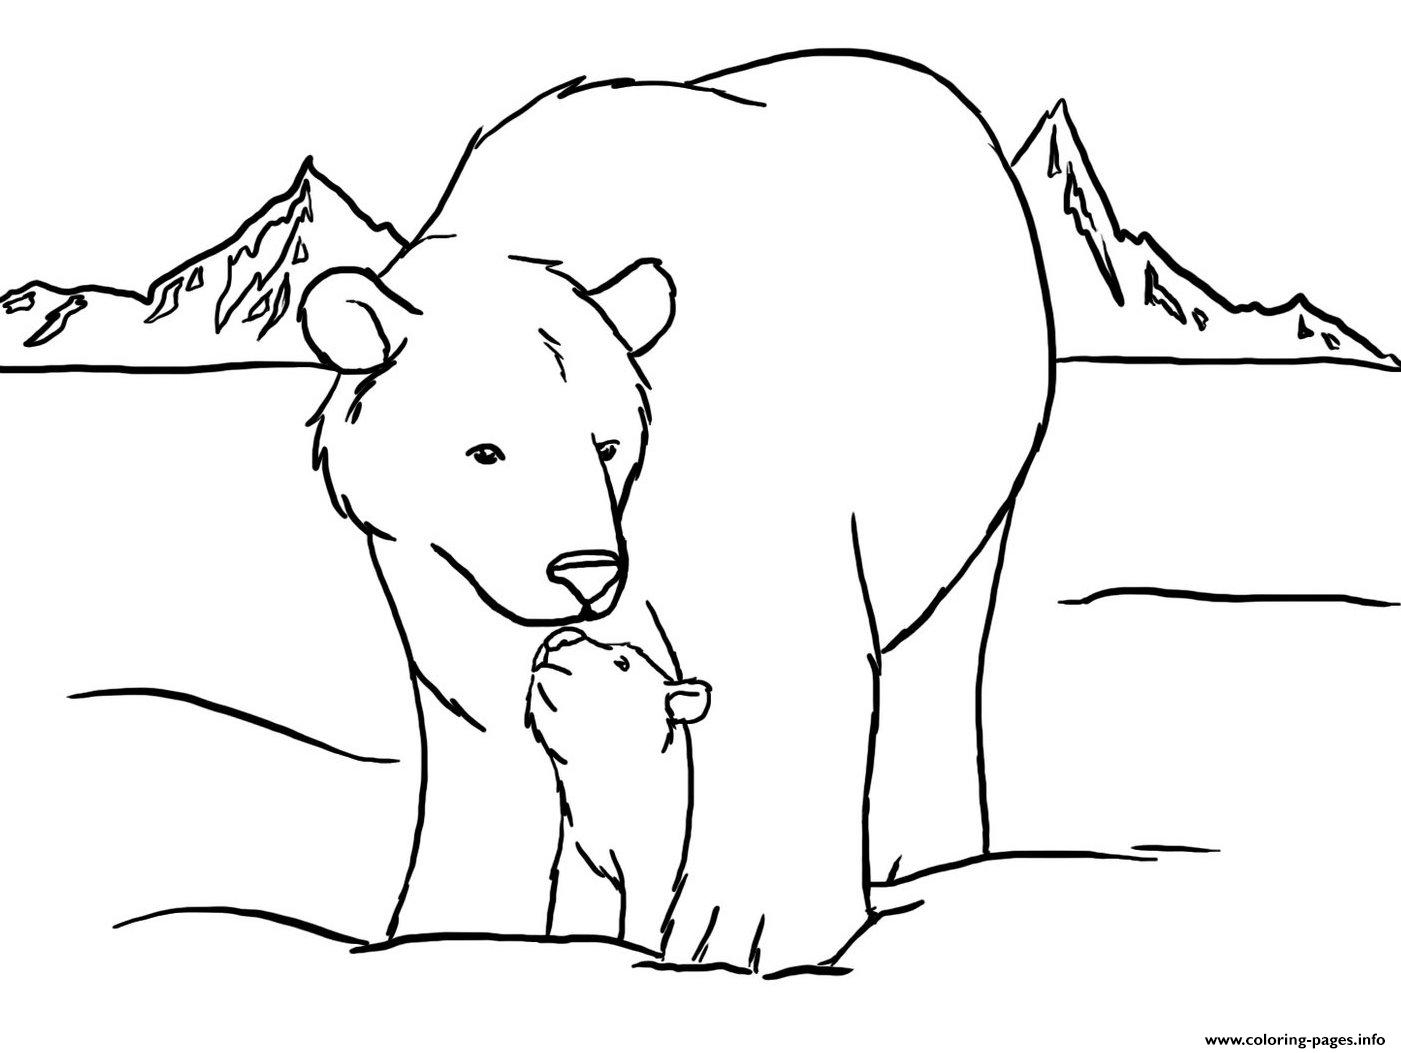 Coloring Pages : Polar Bear Coloring Pages Extraordinary Picture - Polar Bear Printable Pictures Free